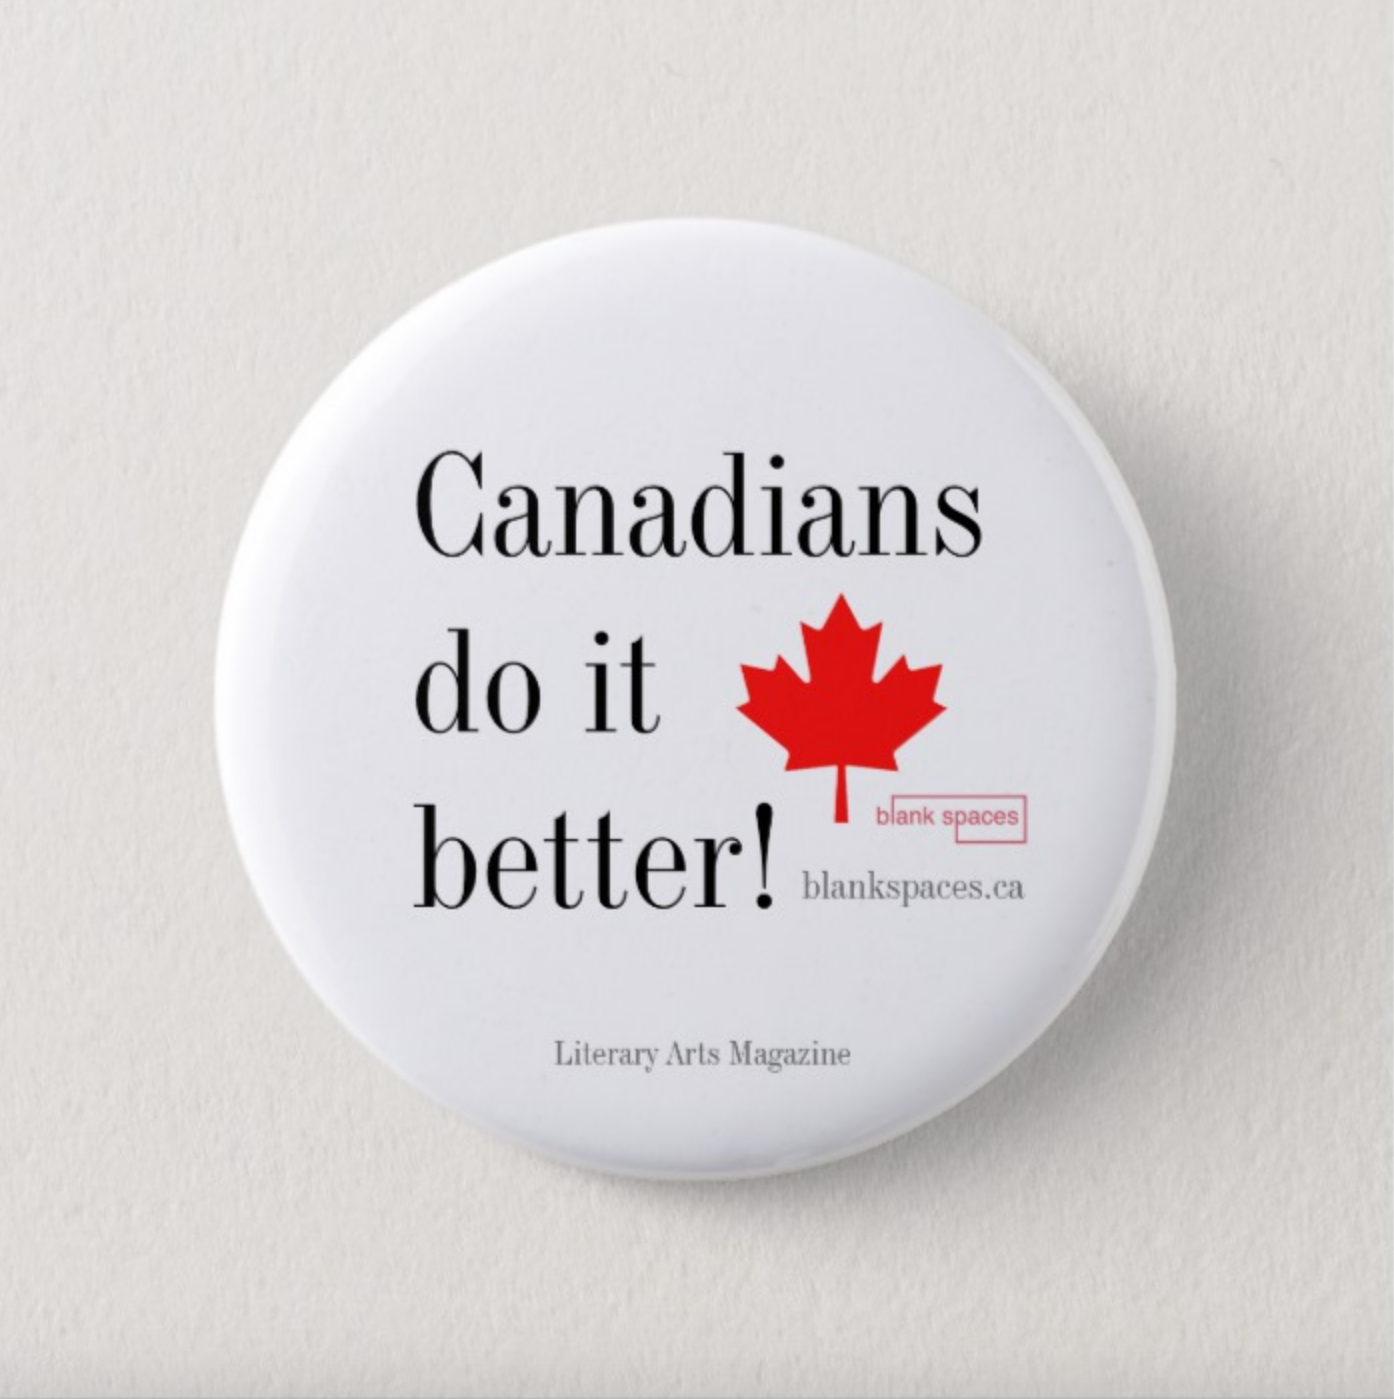 'Canadians do it better!' Pin